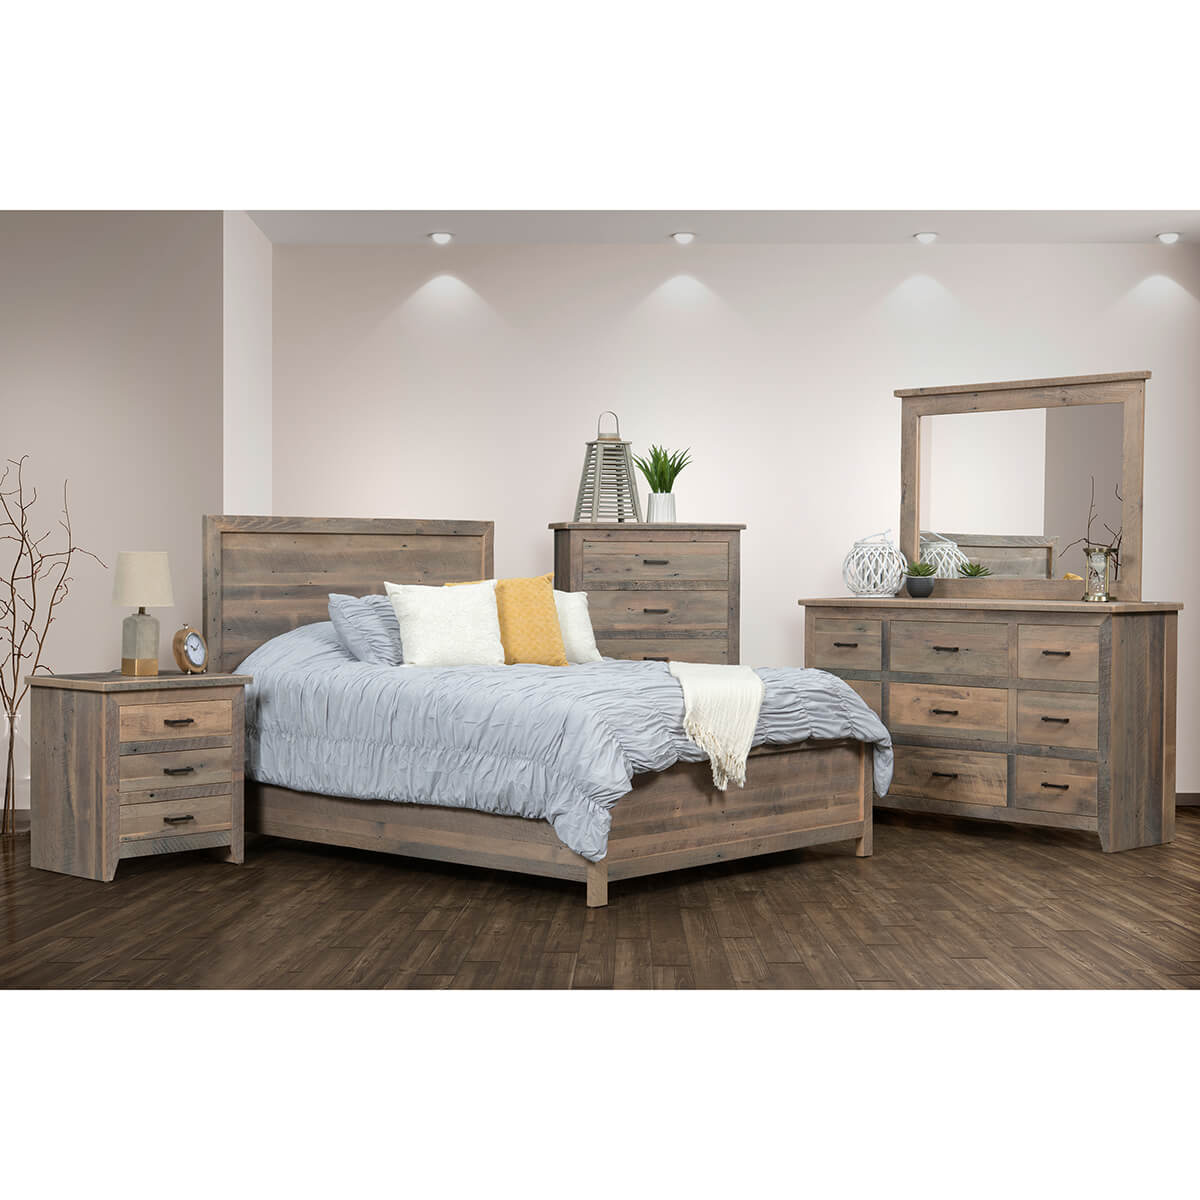 Midland Bedroom Collection